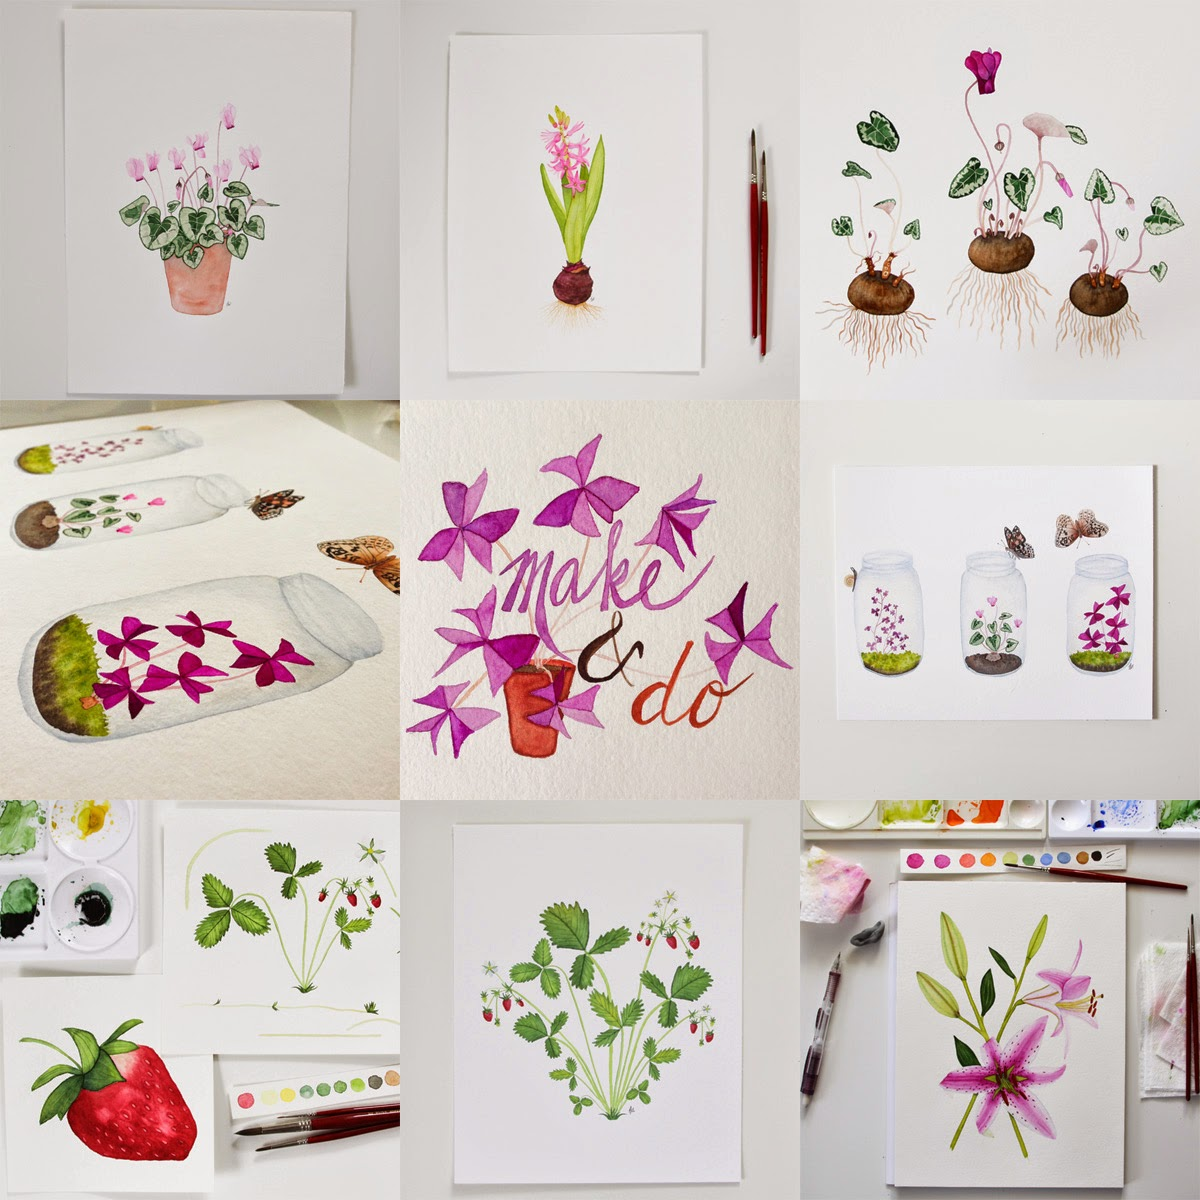 photo collage of watercolor paintings